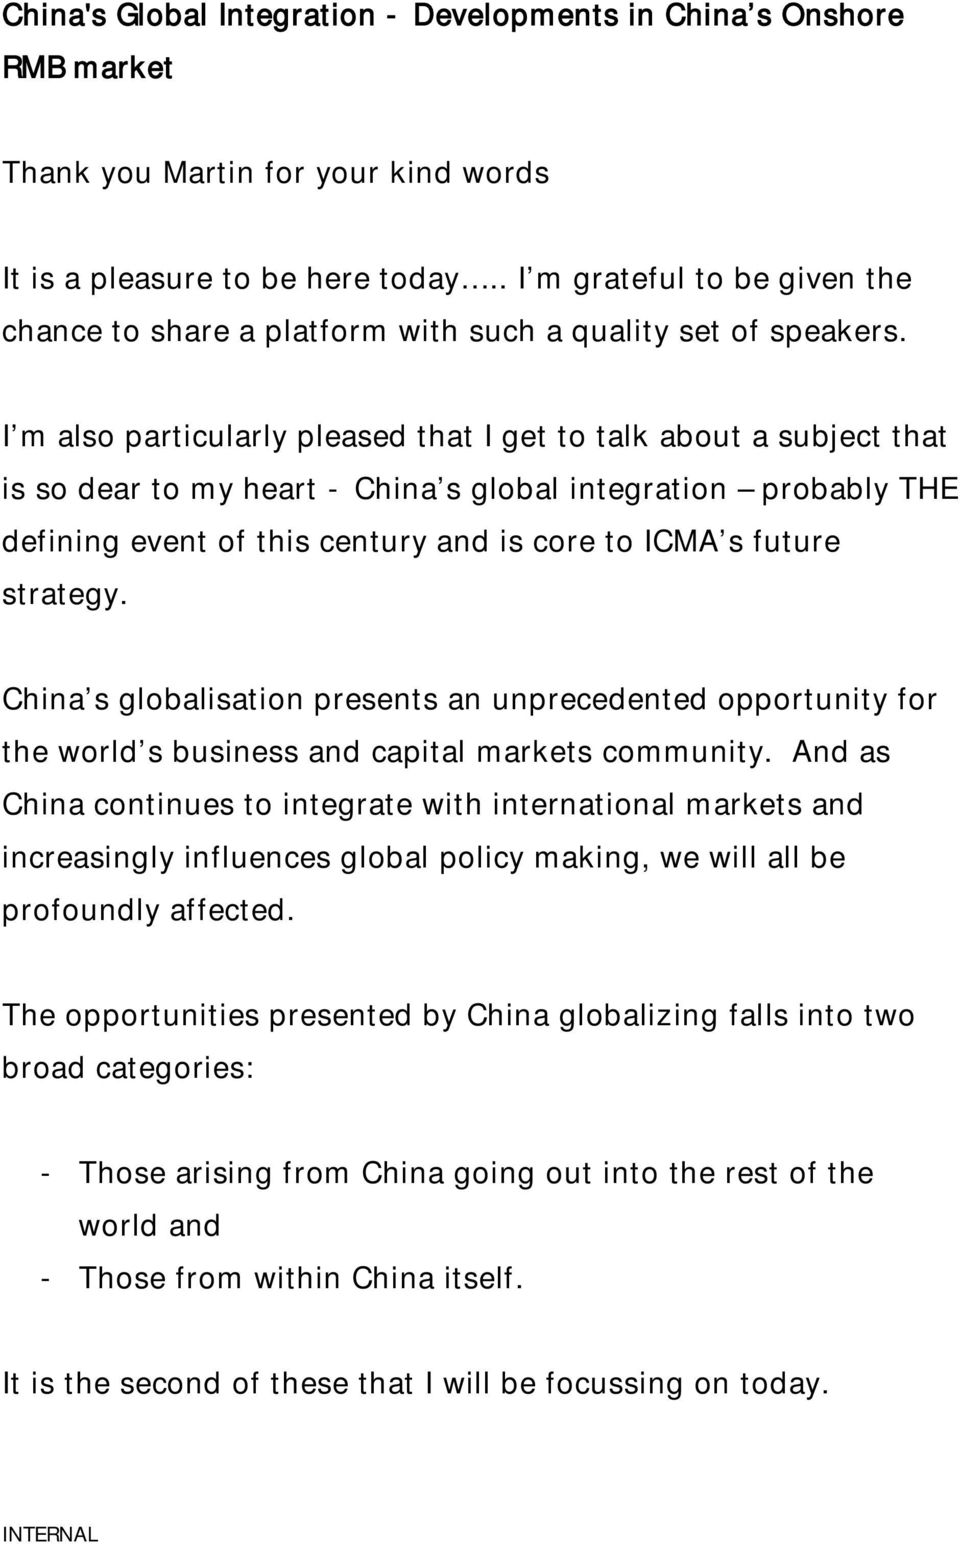 I m also particularly pleased that I get to talk about a subject that is so dear to my heart - China s global integration probably THE defining event of this century and is core to ICMA s future